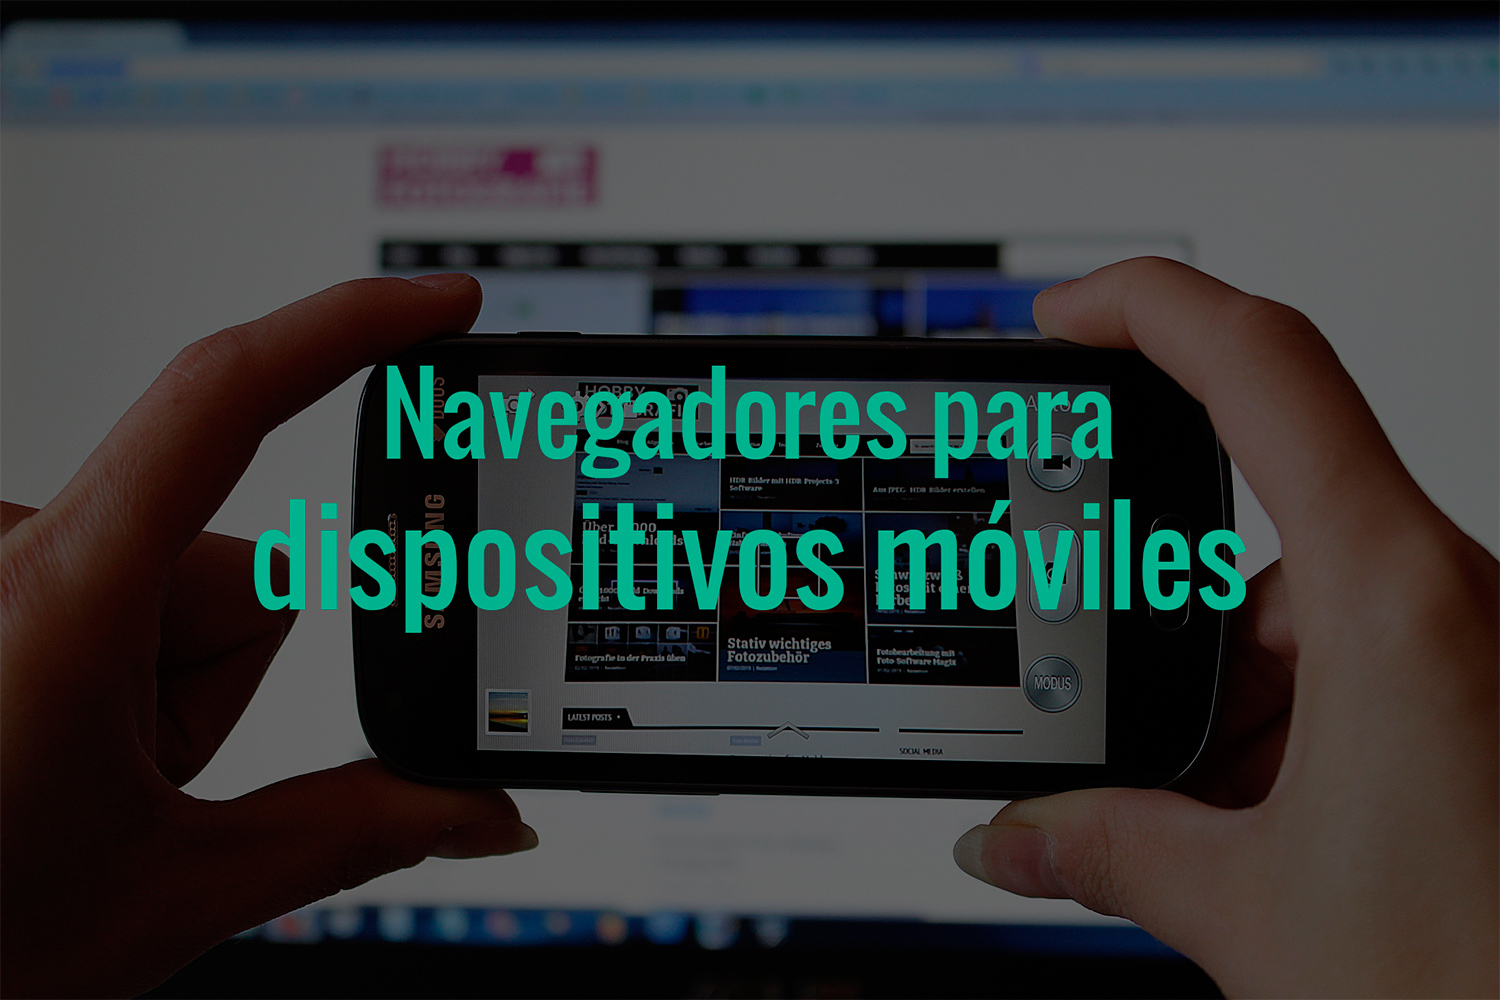 navegadores-para-dispositivos-moviles.jpg